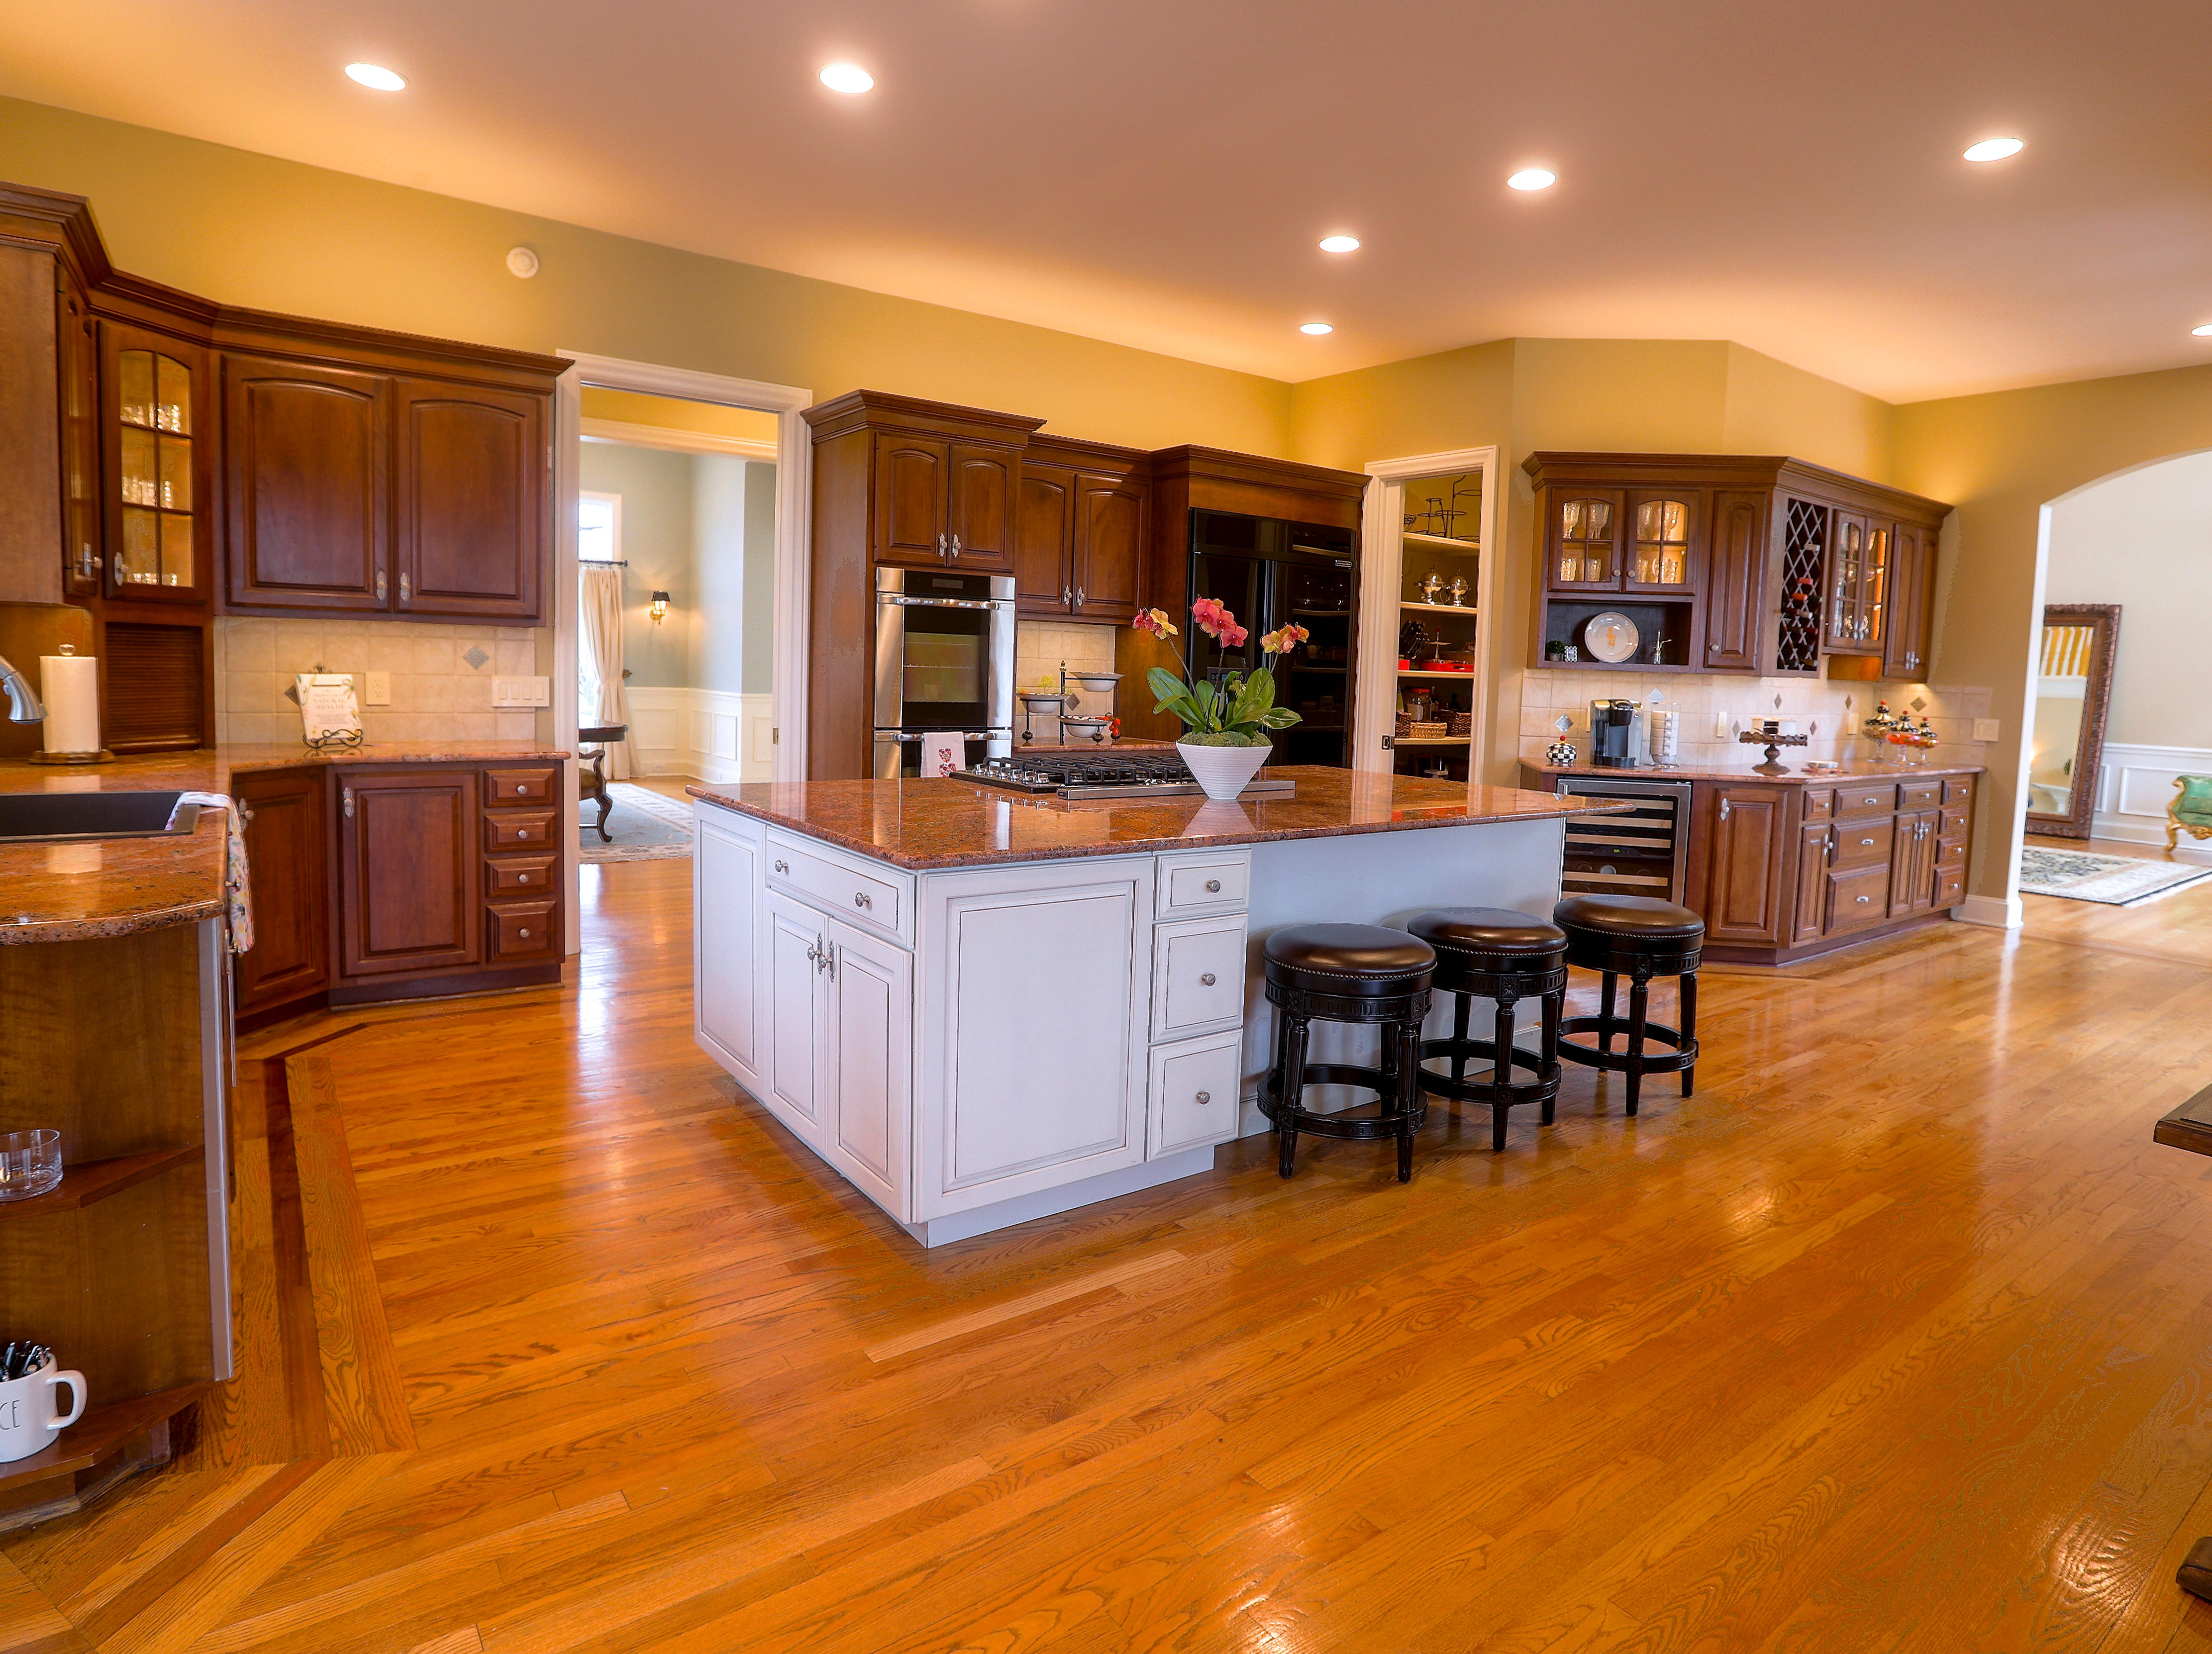 An open kitchen has many views leading into different rooms.